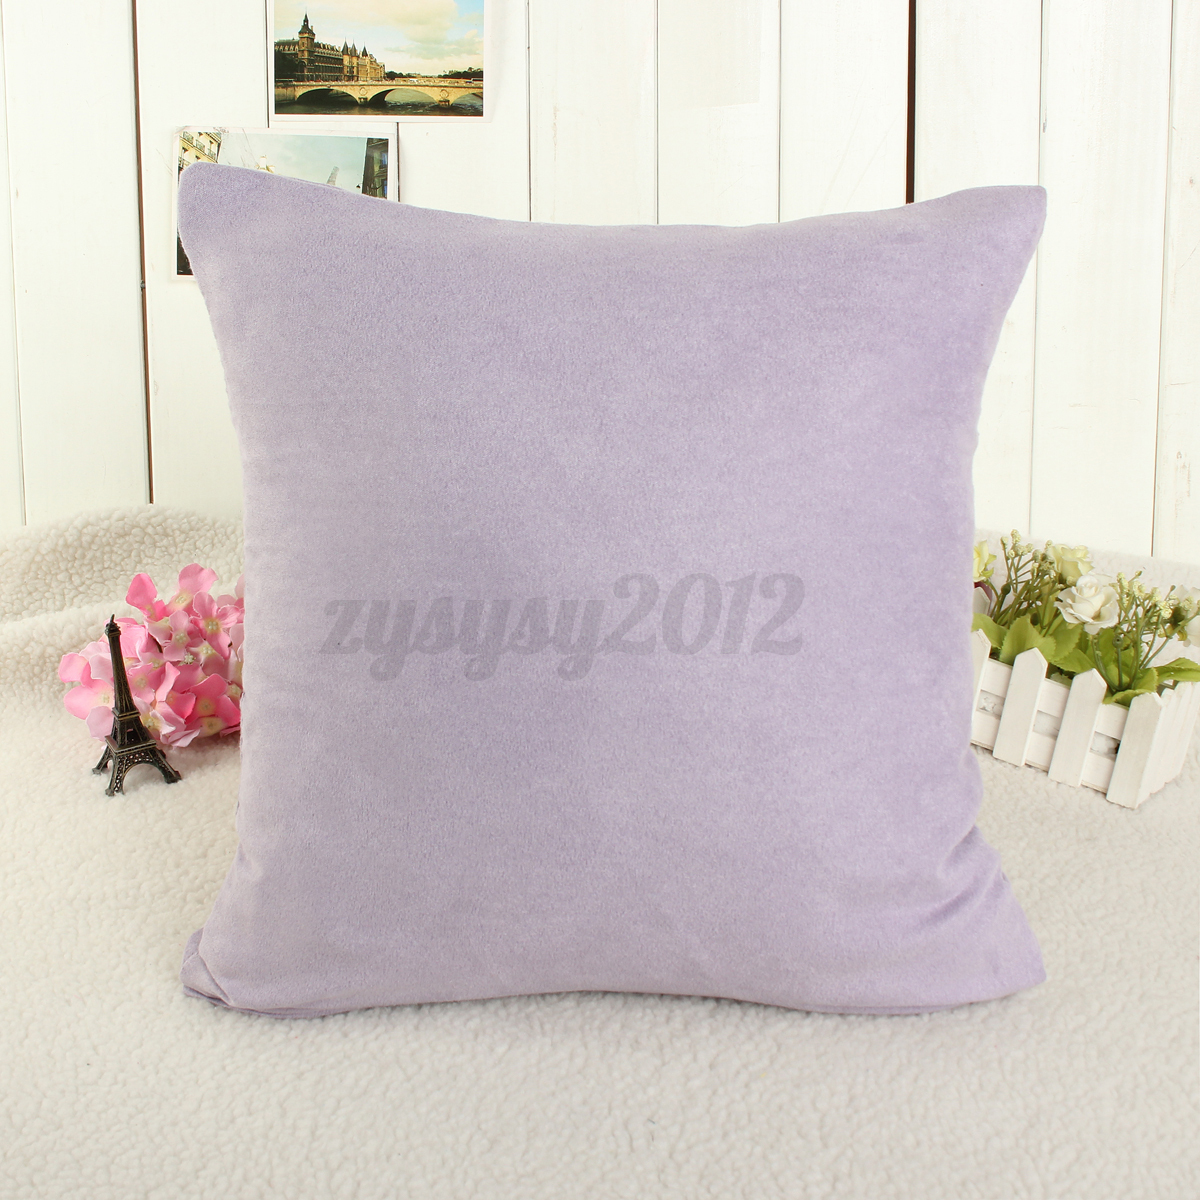 Soft Decorative Throw Pillows : Candy Color Soft Throw Pillow Cover Home Bed Sofa Decorative Case Decor Cushion eBay